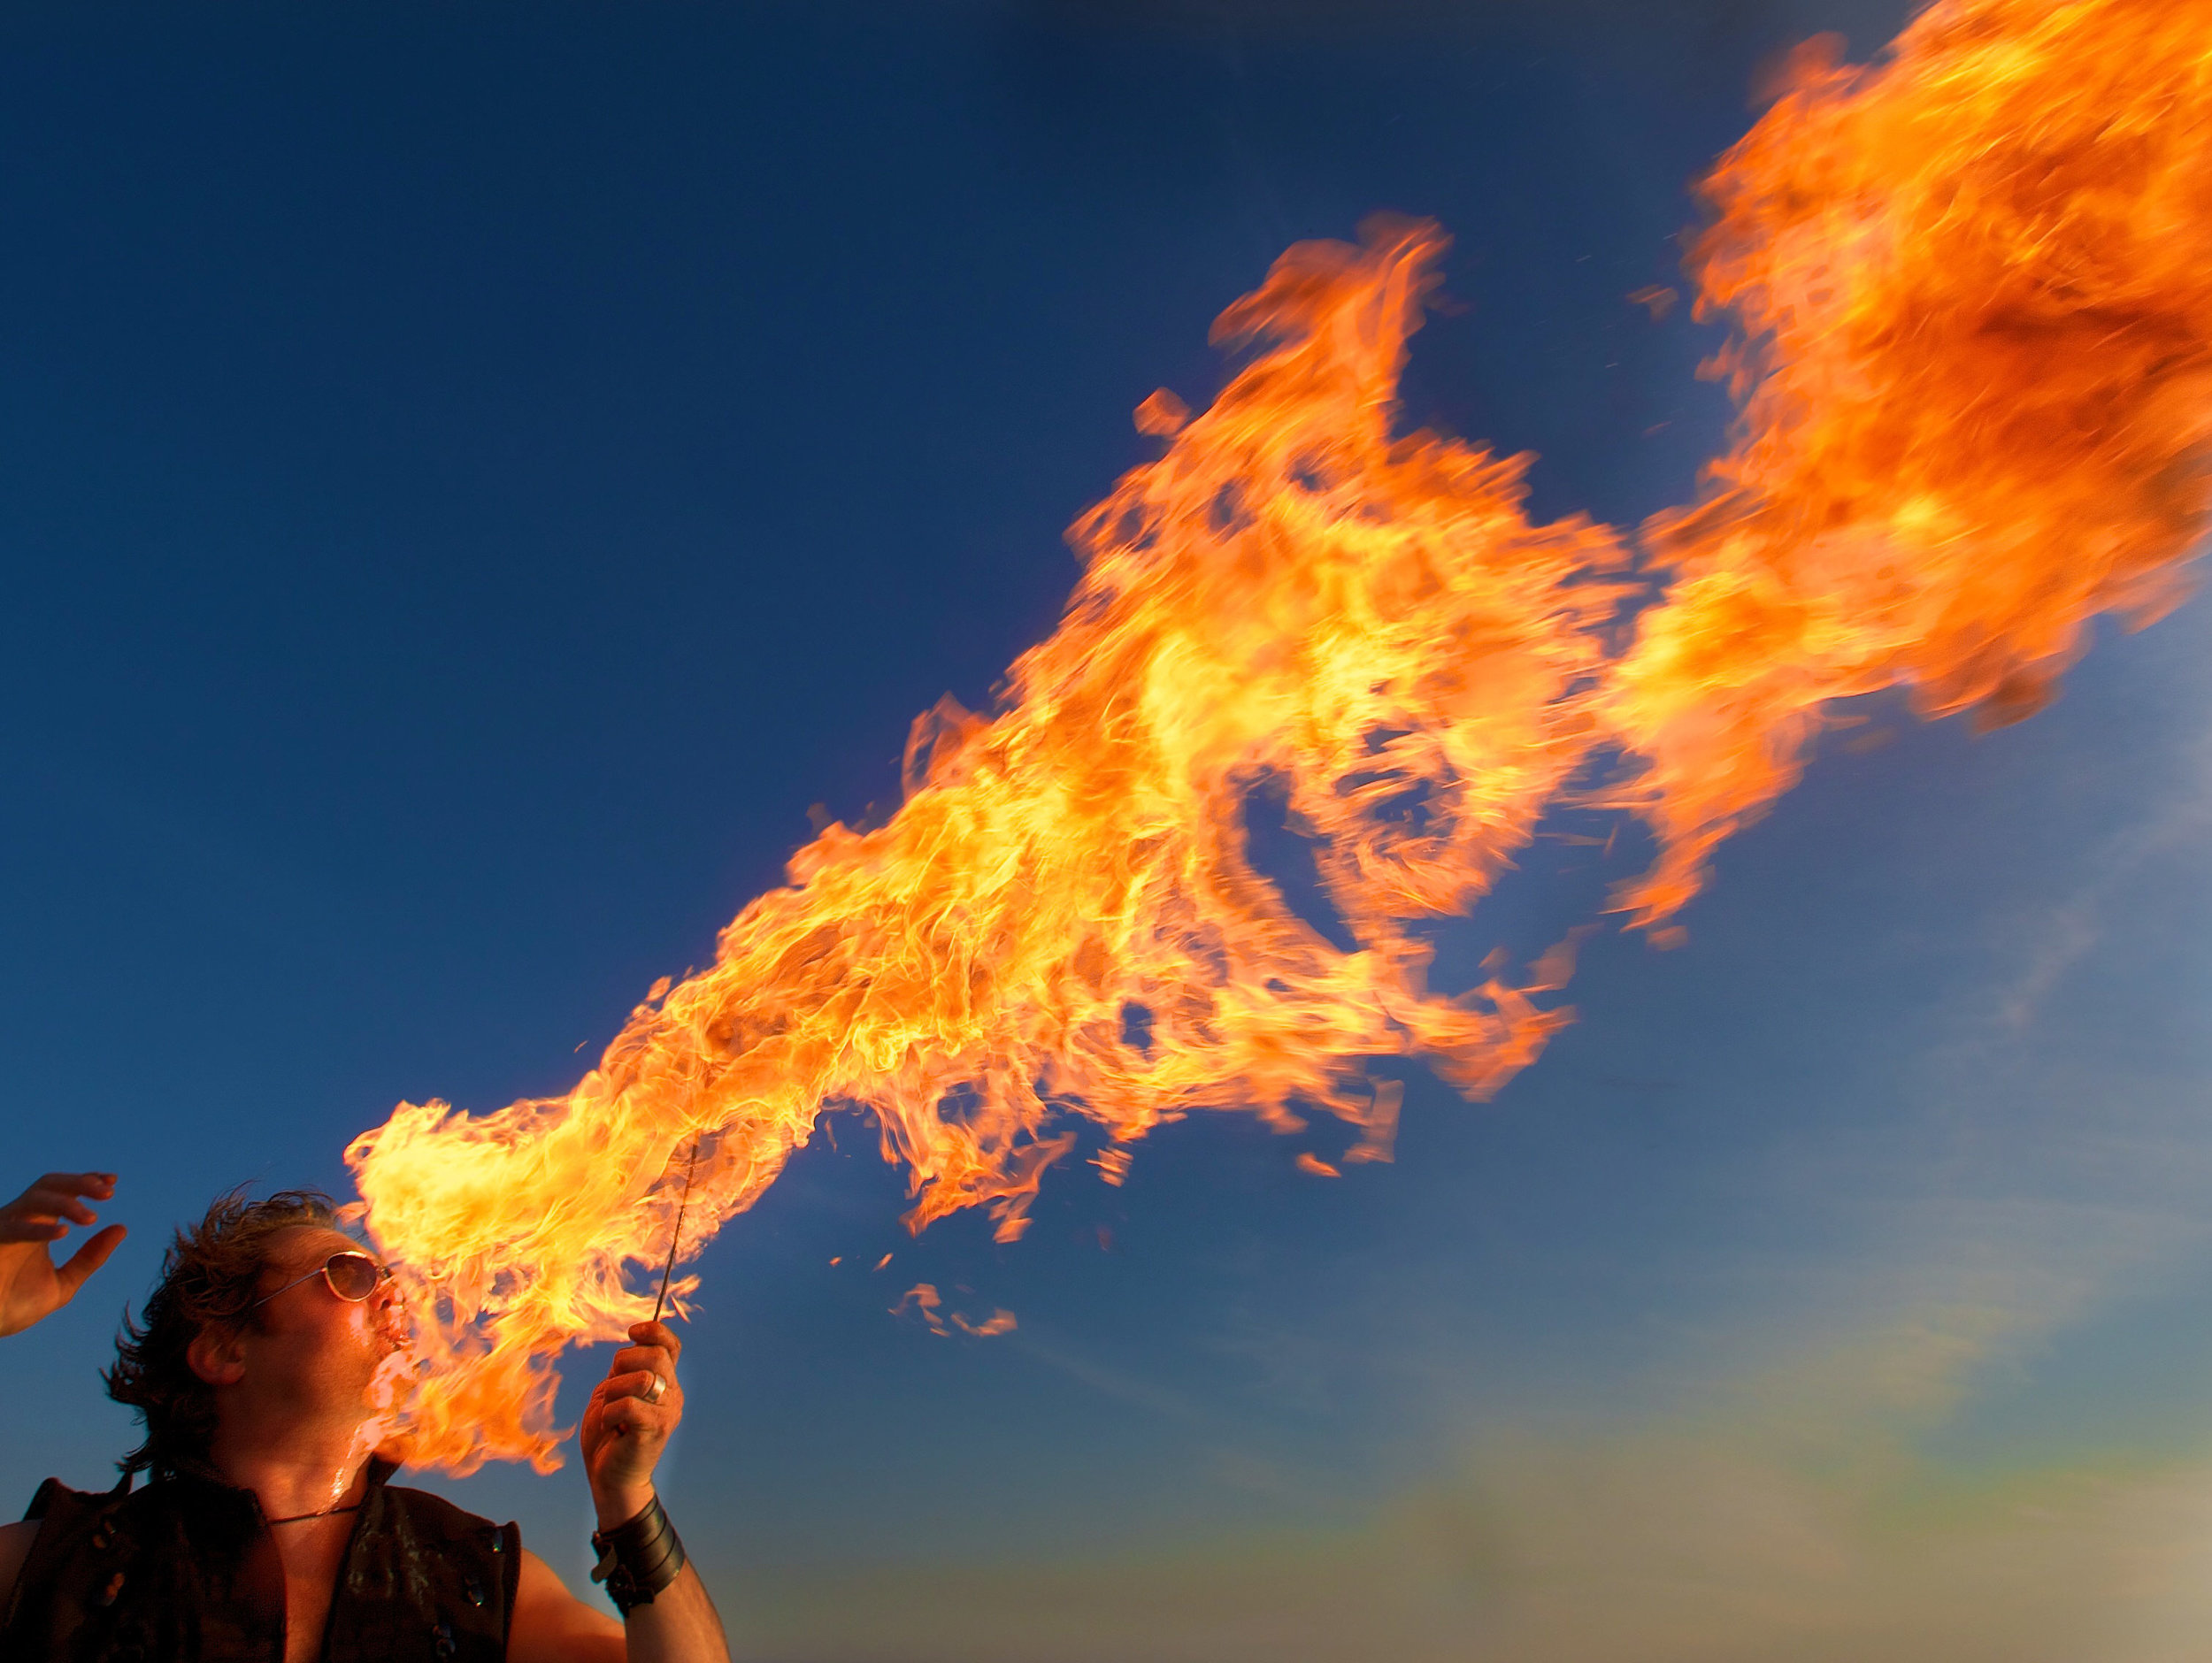 CHP_Export_10117852_Roy Maloy Fire eater (1).jpg